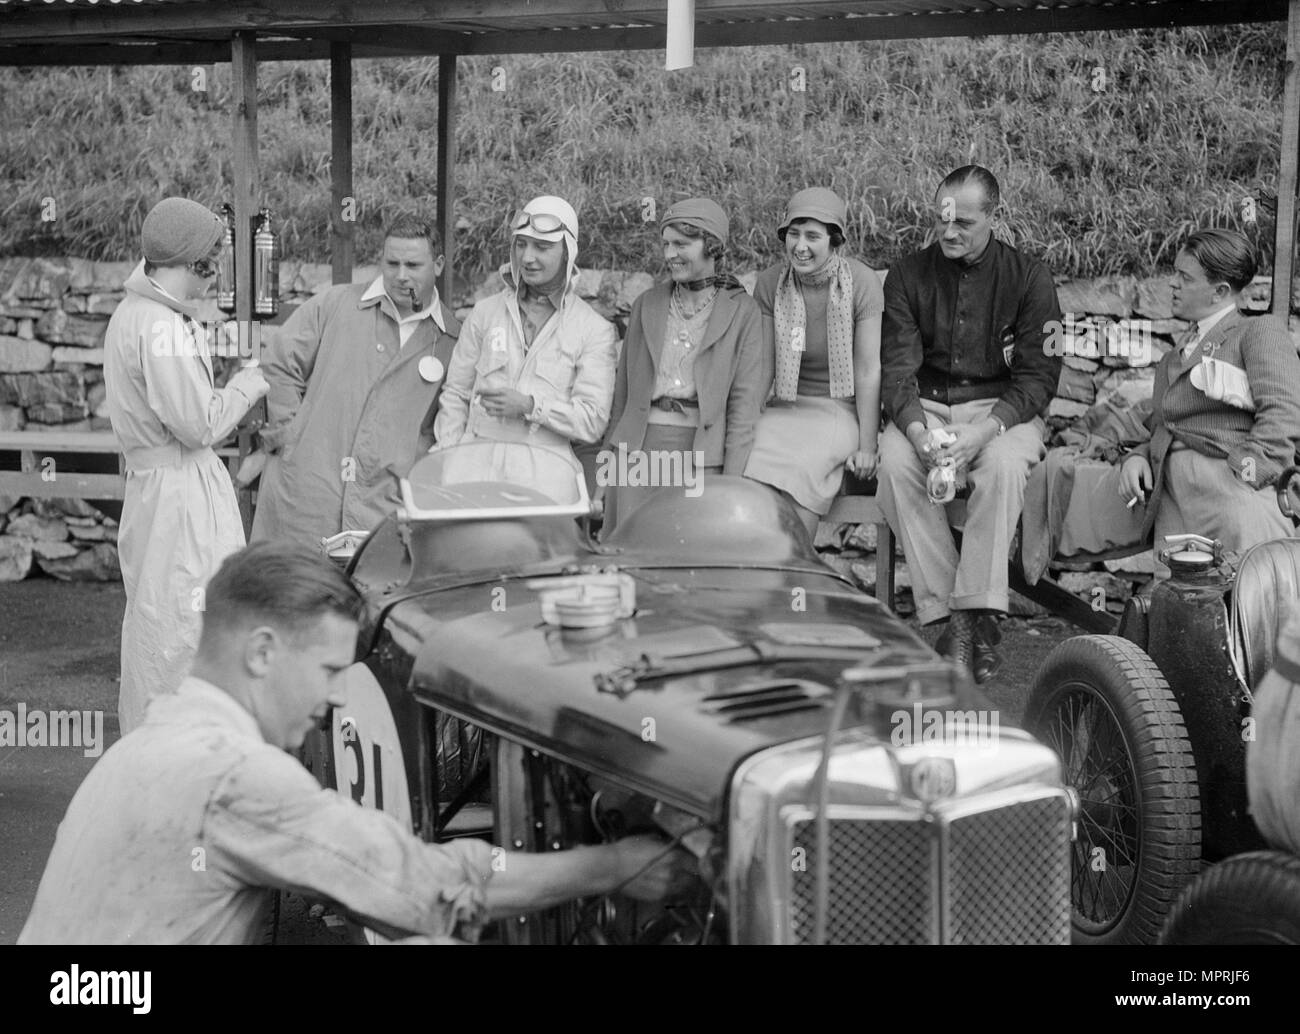 MG C type of Cyril Paul in the pits at the RAC TT Race, Ards Circuit, Belfast, 1932. Artist: Bill Brunell. - Stock Image